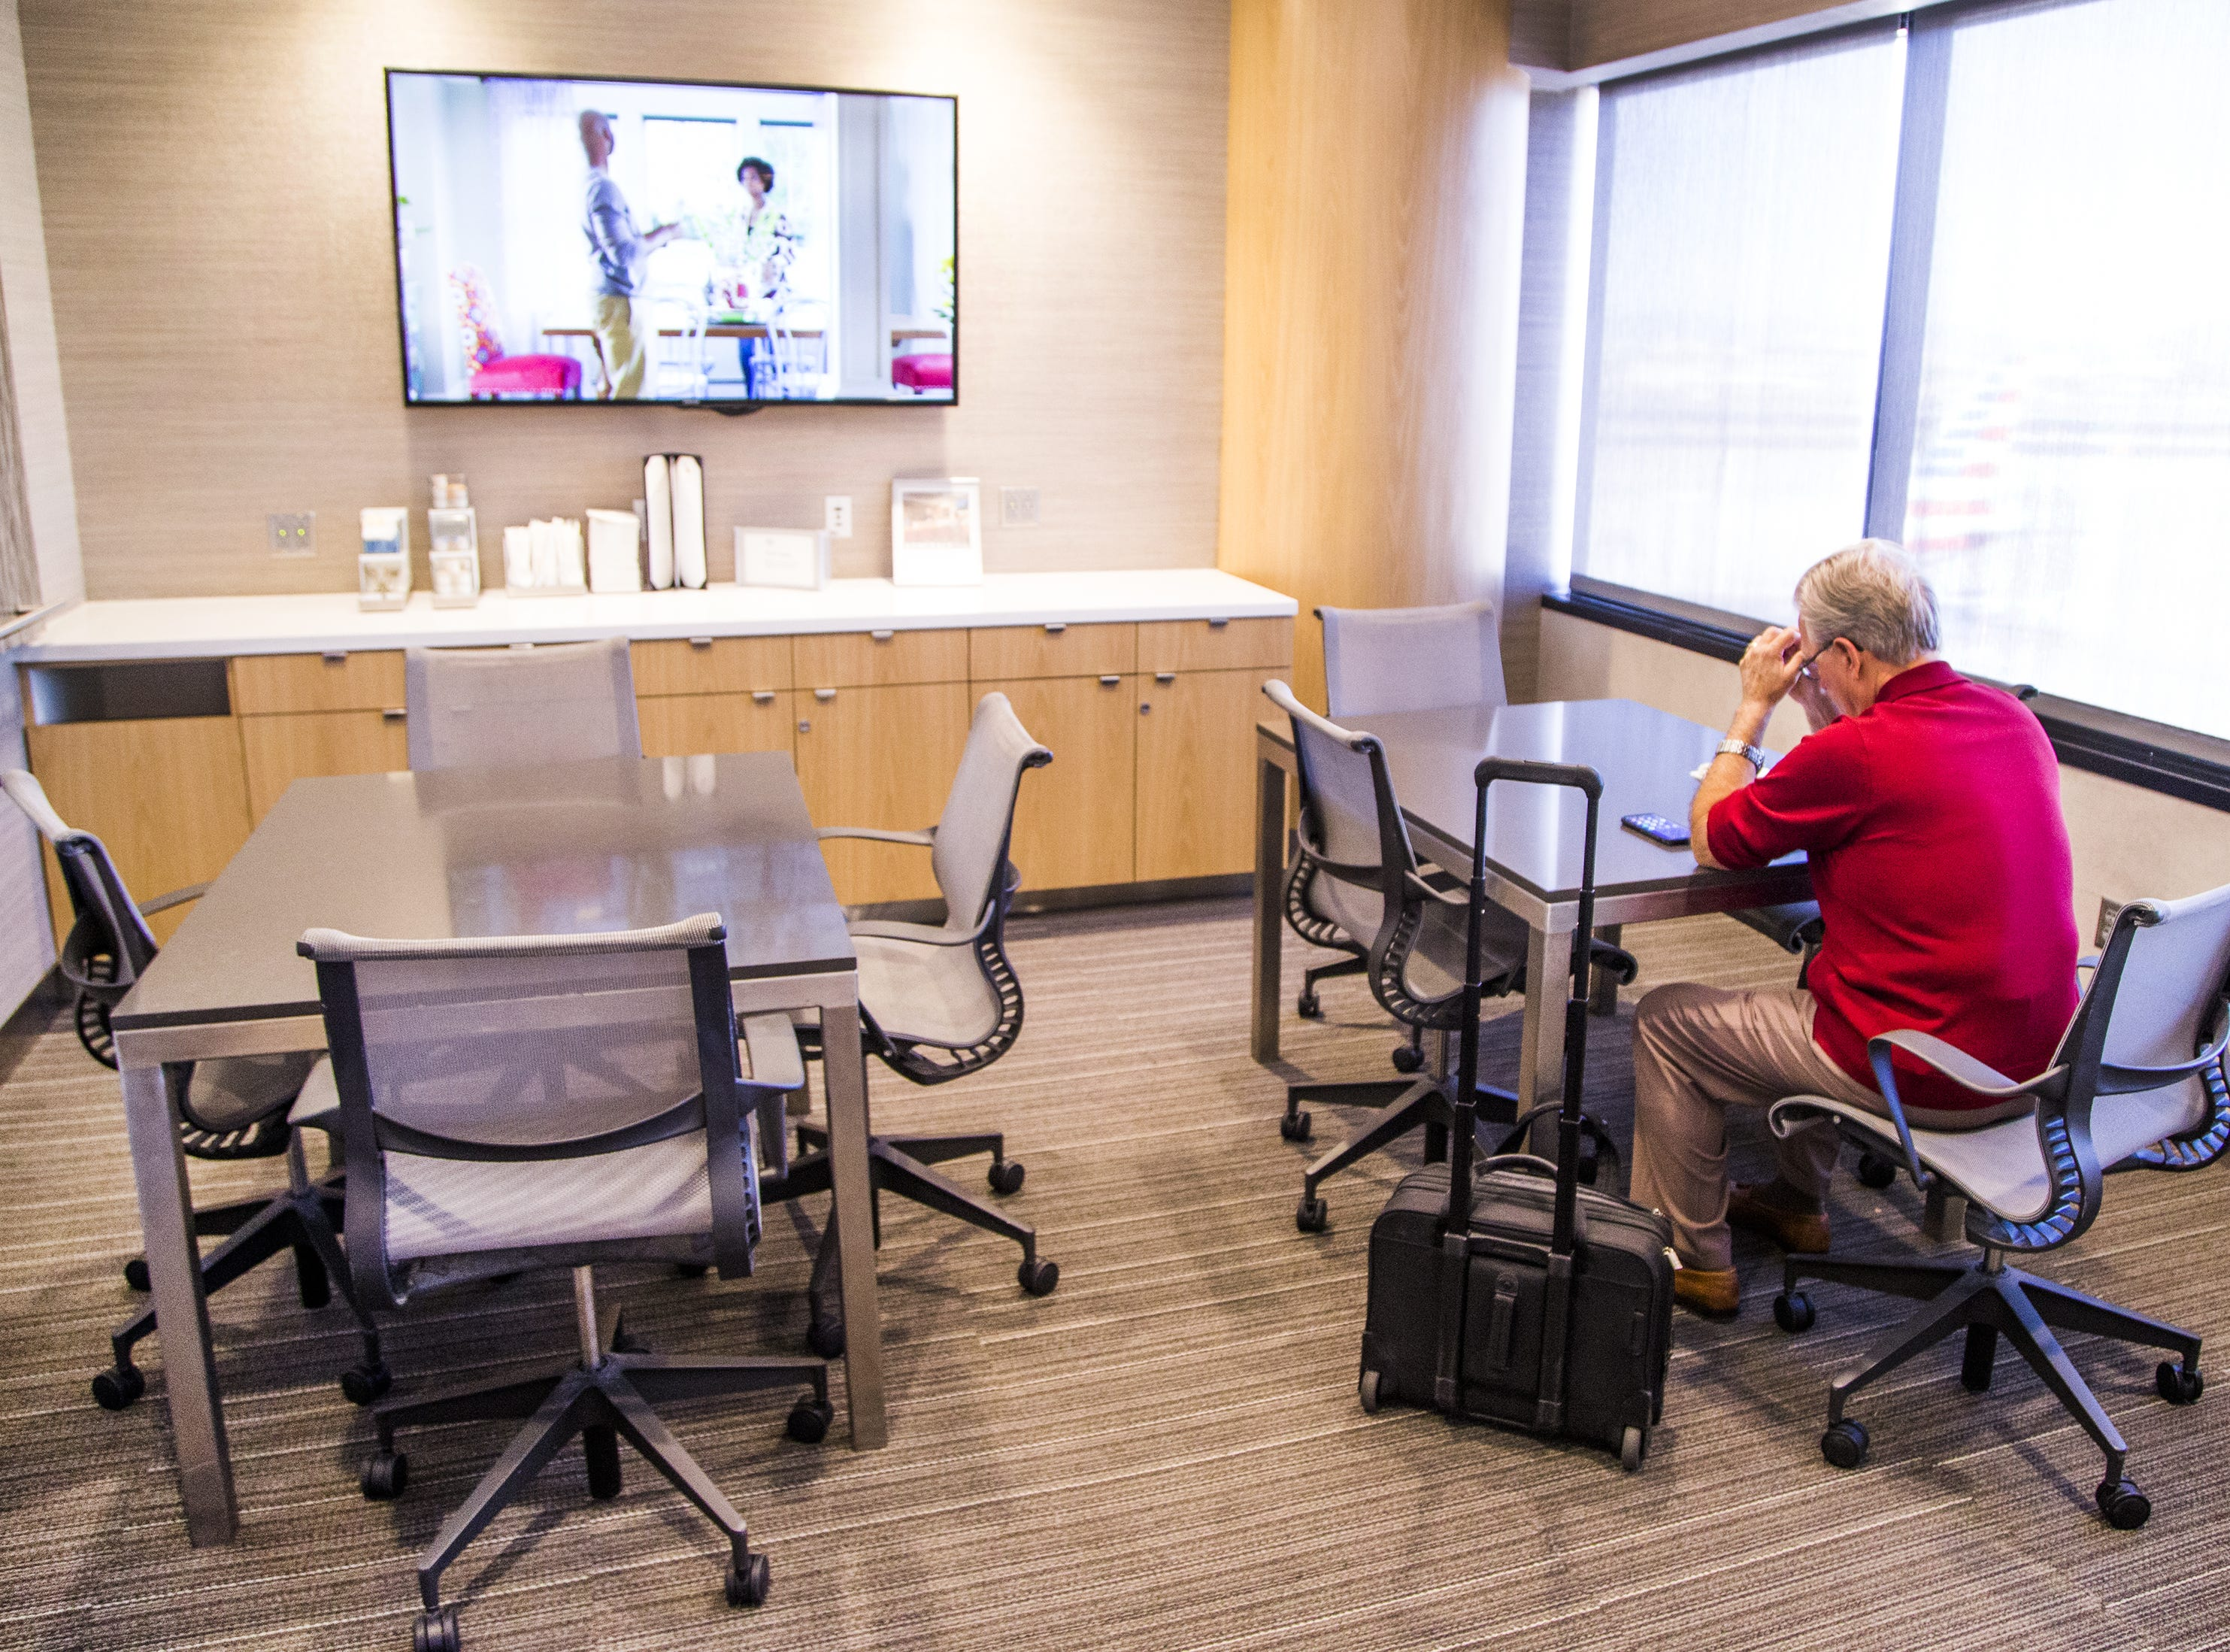 A customer relaxes in the meeting room inside the American Airlines Admirals Club in Terminal 4 at Sky Harbor International Airport, Wednesday, October 31, 2018.